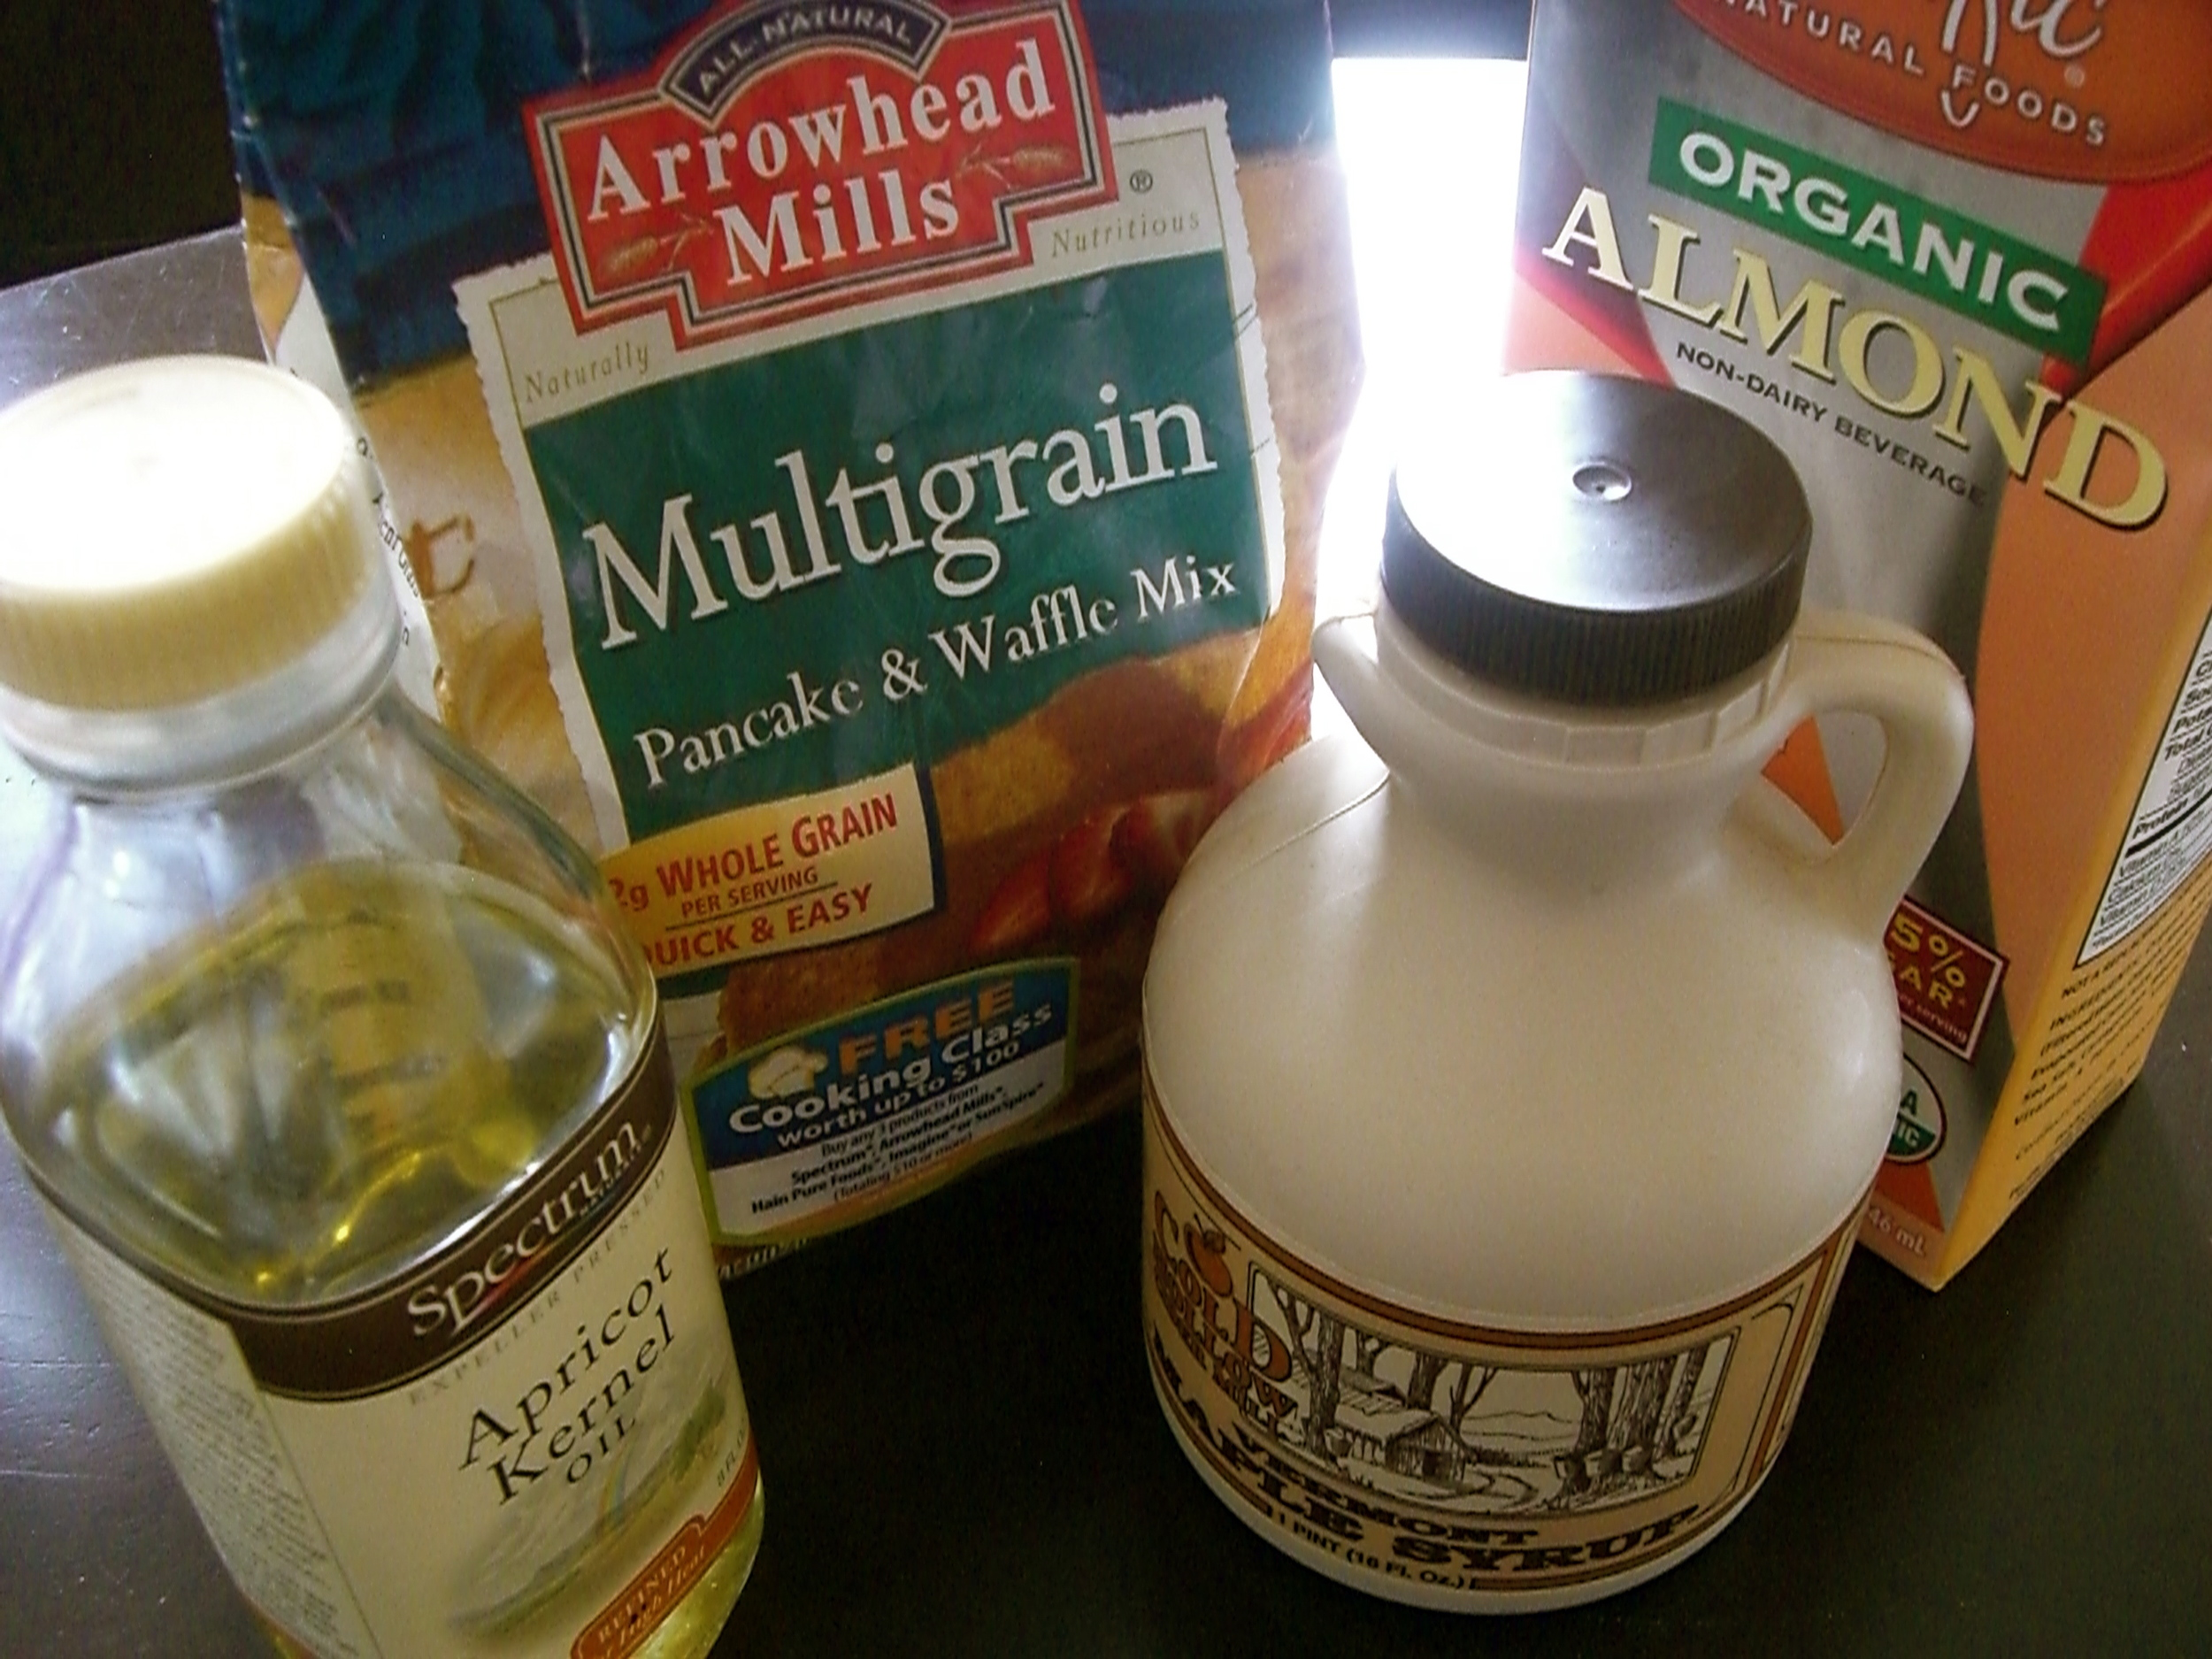 Here are the ingredients to make perfect vegan pancakes.